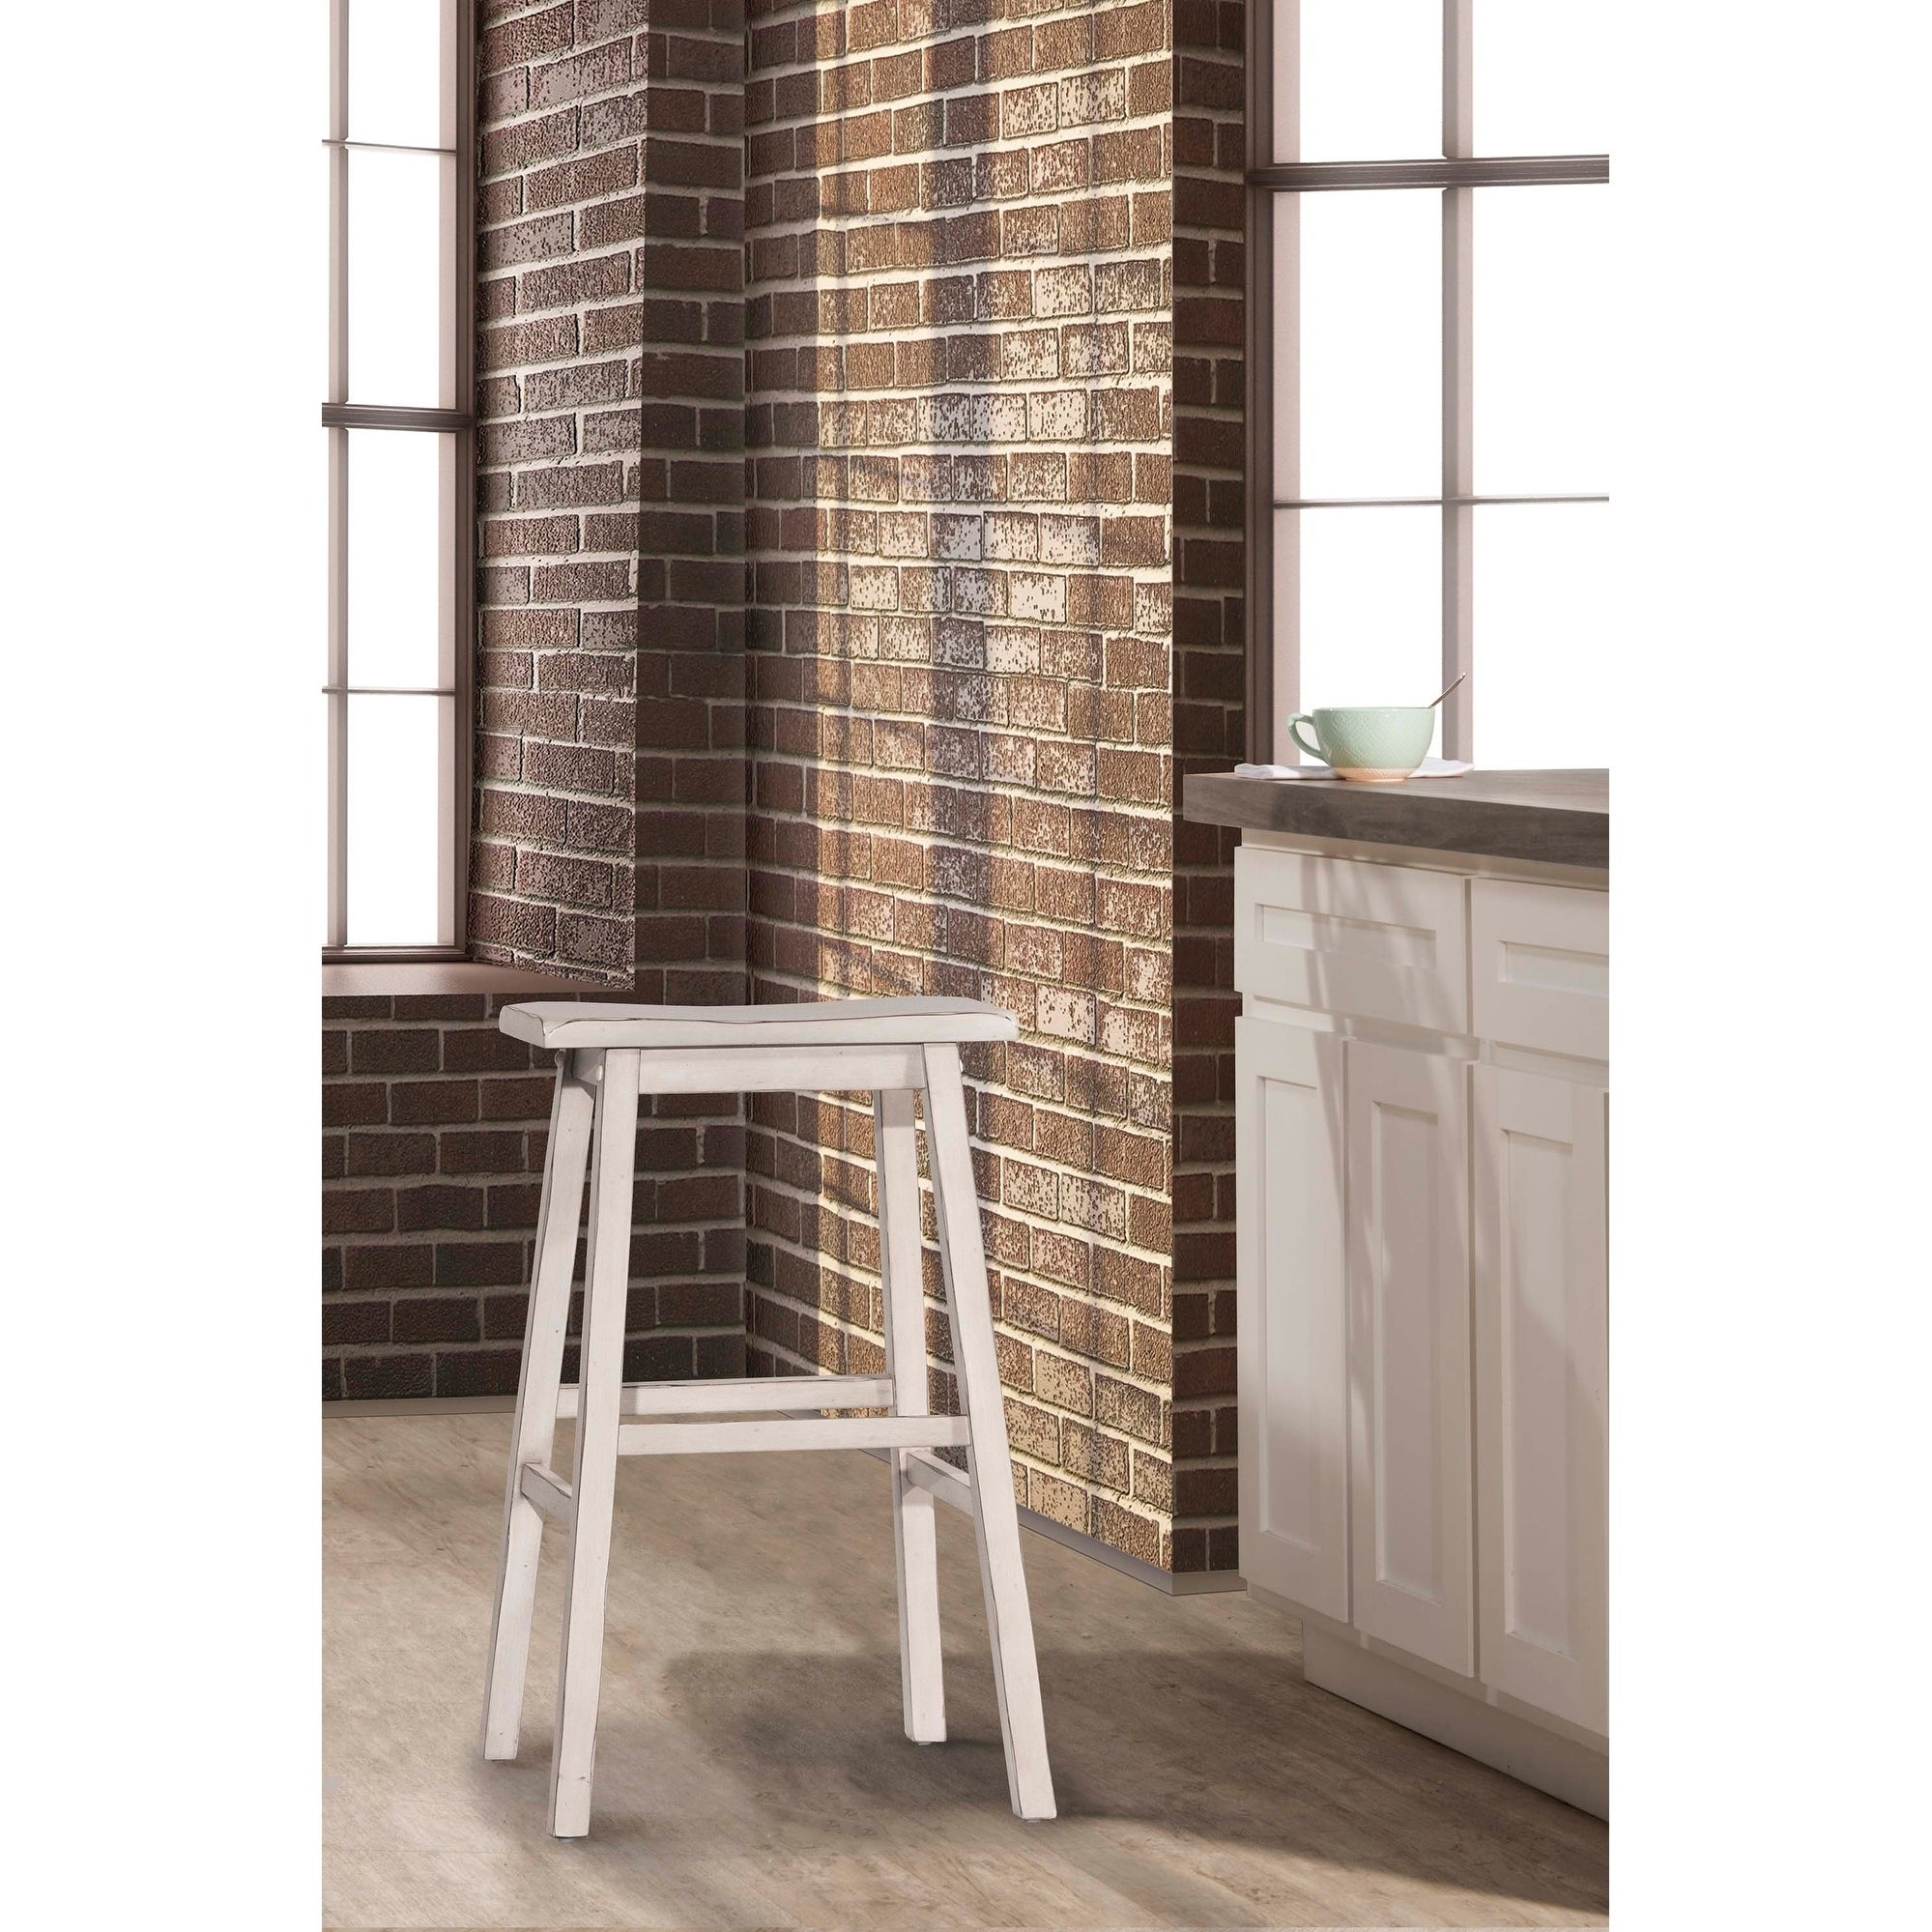 Tremendous The Gray Barn Chatterly Non Swivel Backless Bar Stool Sea White Andrewgaddart Wooden Chair Designs For Living Room Andrewgaddartcom